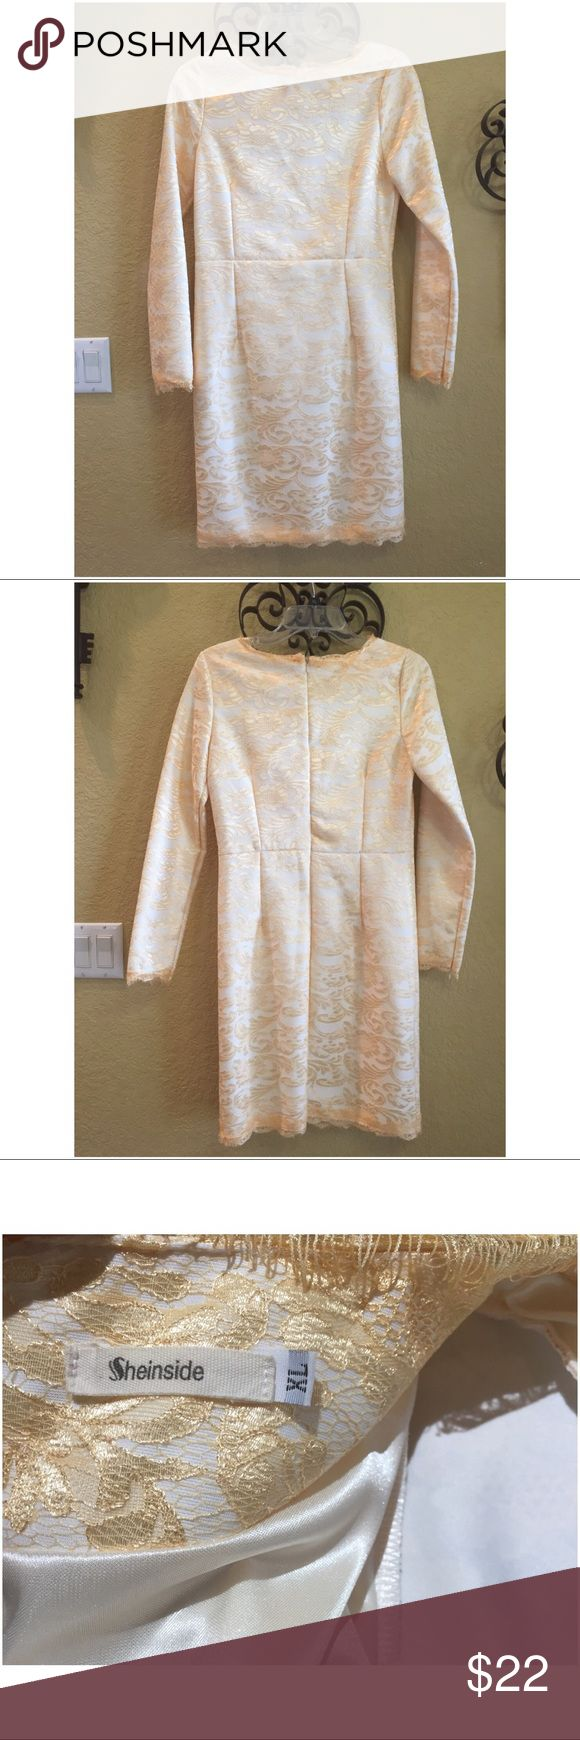 """SheIn Champagne Gold Cream Lace Cocktail Dress SheIn Champagne Cream Lace Cocktail Party Dress. ABSOLUTELY STUNNING! Dress is lined. Has a lace overlay and lace details on trim throughout dress. Pics do NOT do it justice AT ALL! Tagged a size XL but fits closer to a size 4 in my opinion. Under arm to underarm approx 16.""""  Hips approx 17"""". Total length approx 35"""". All measurements were taken lying flat. SheInside Dresses"""